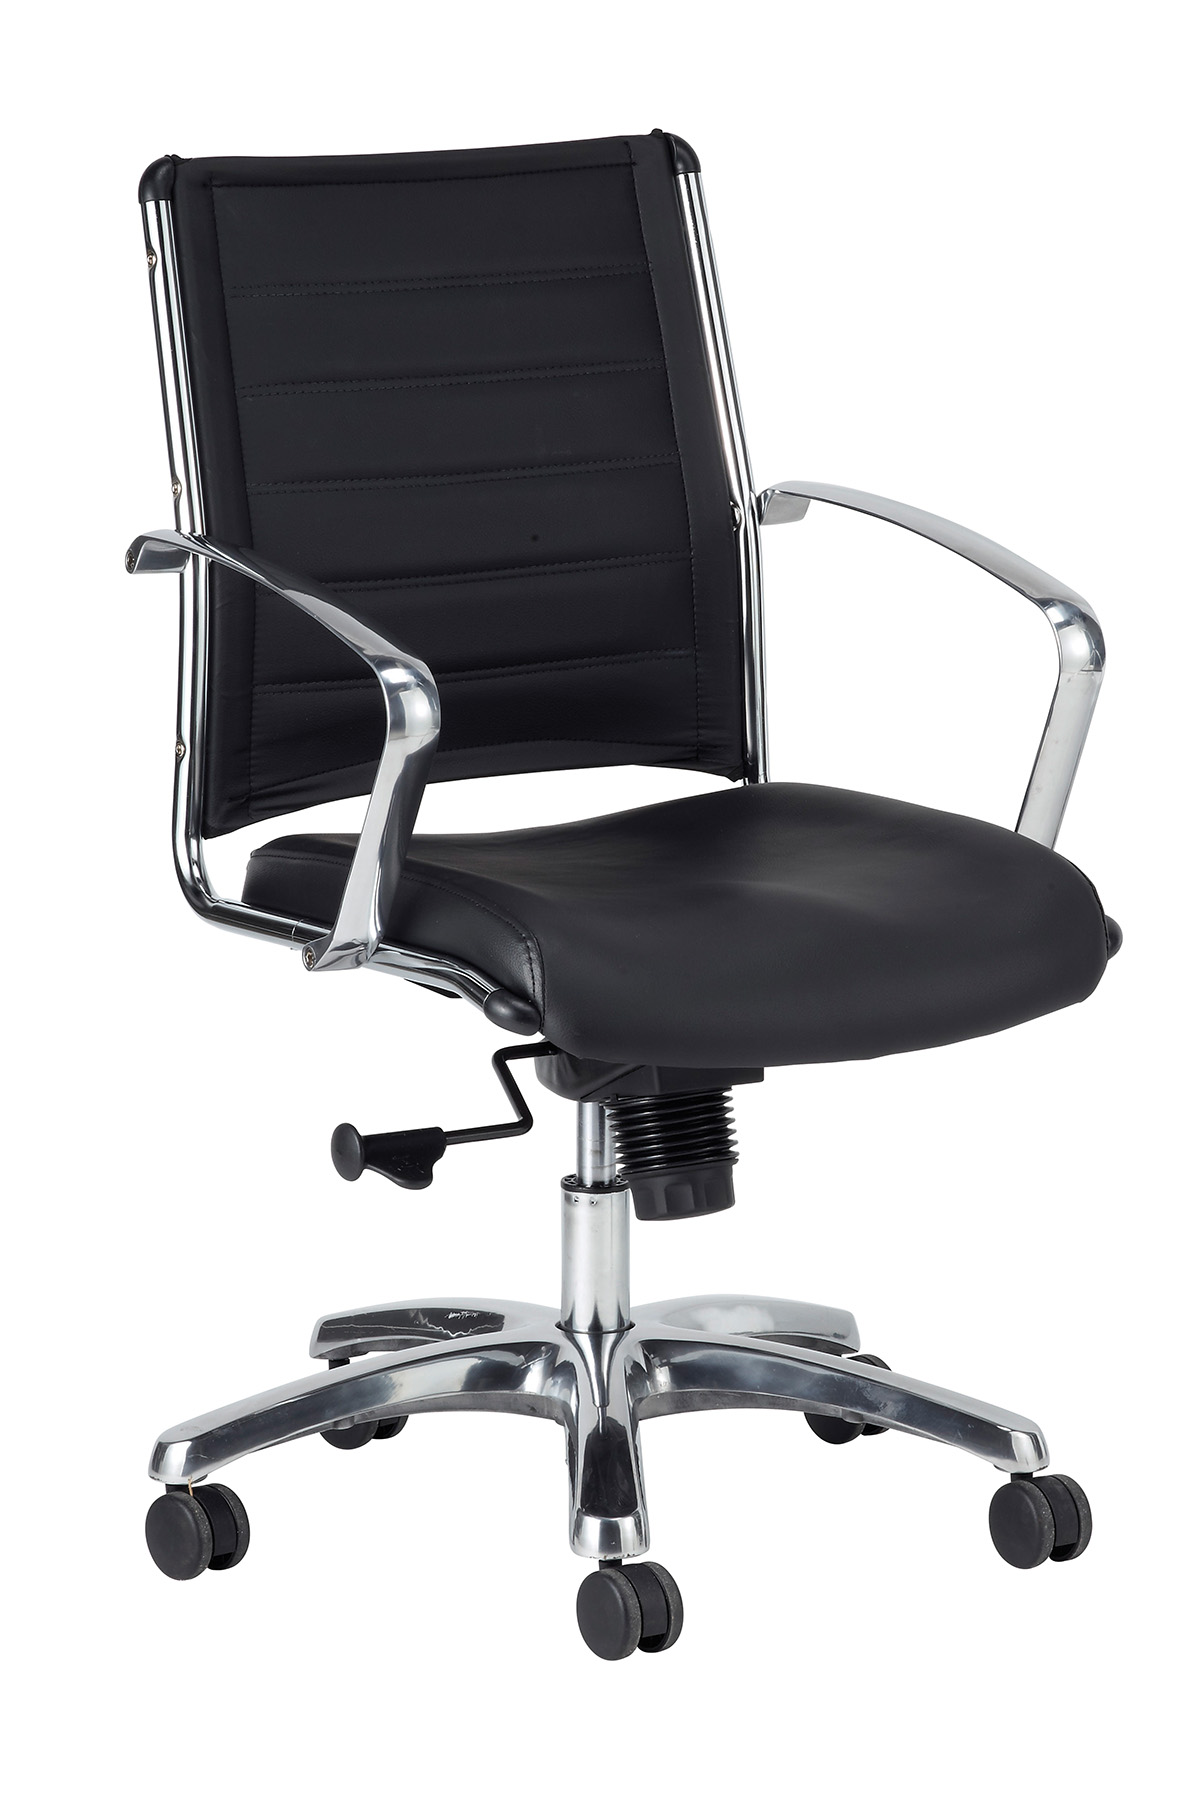 Eurotech Europa leather mid back chair Black